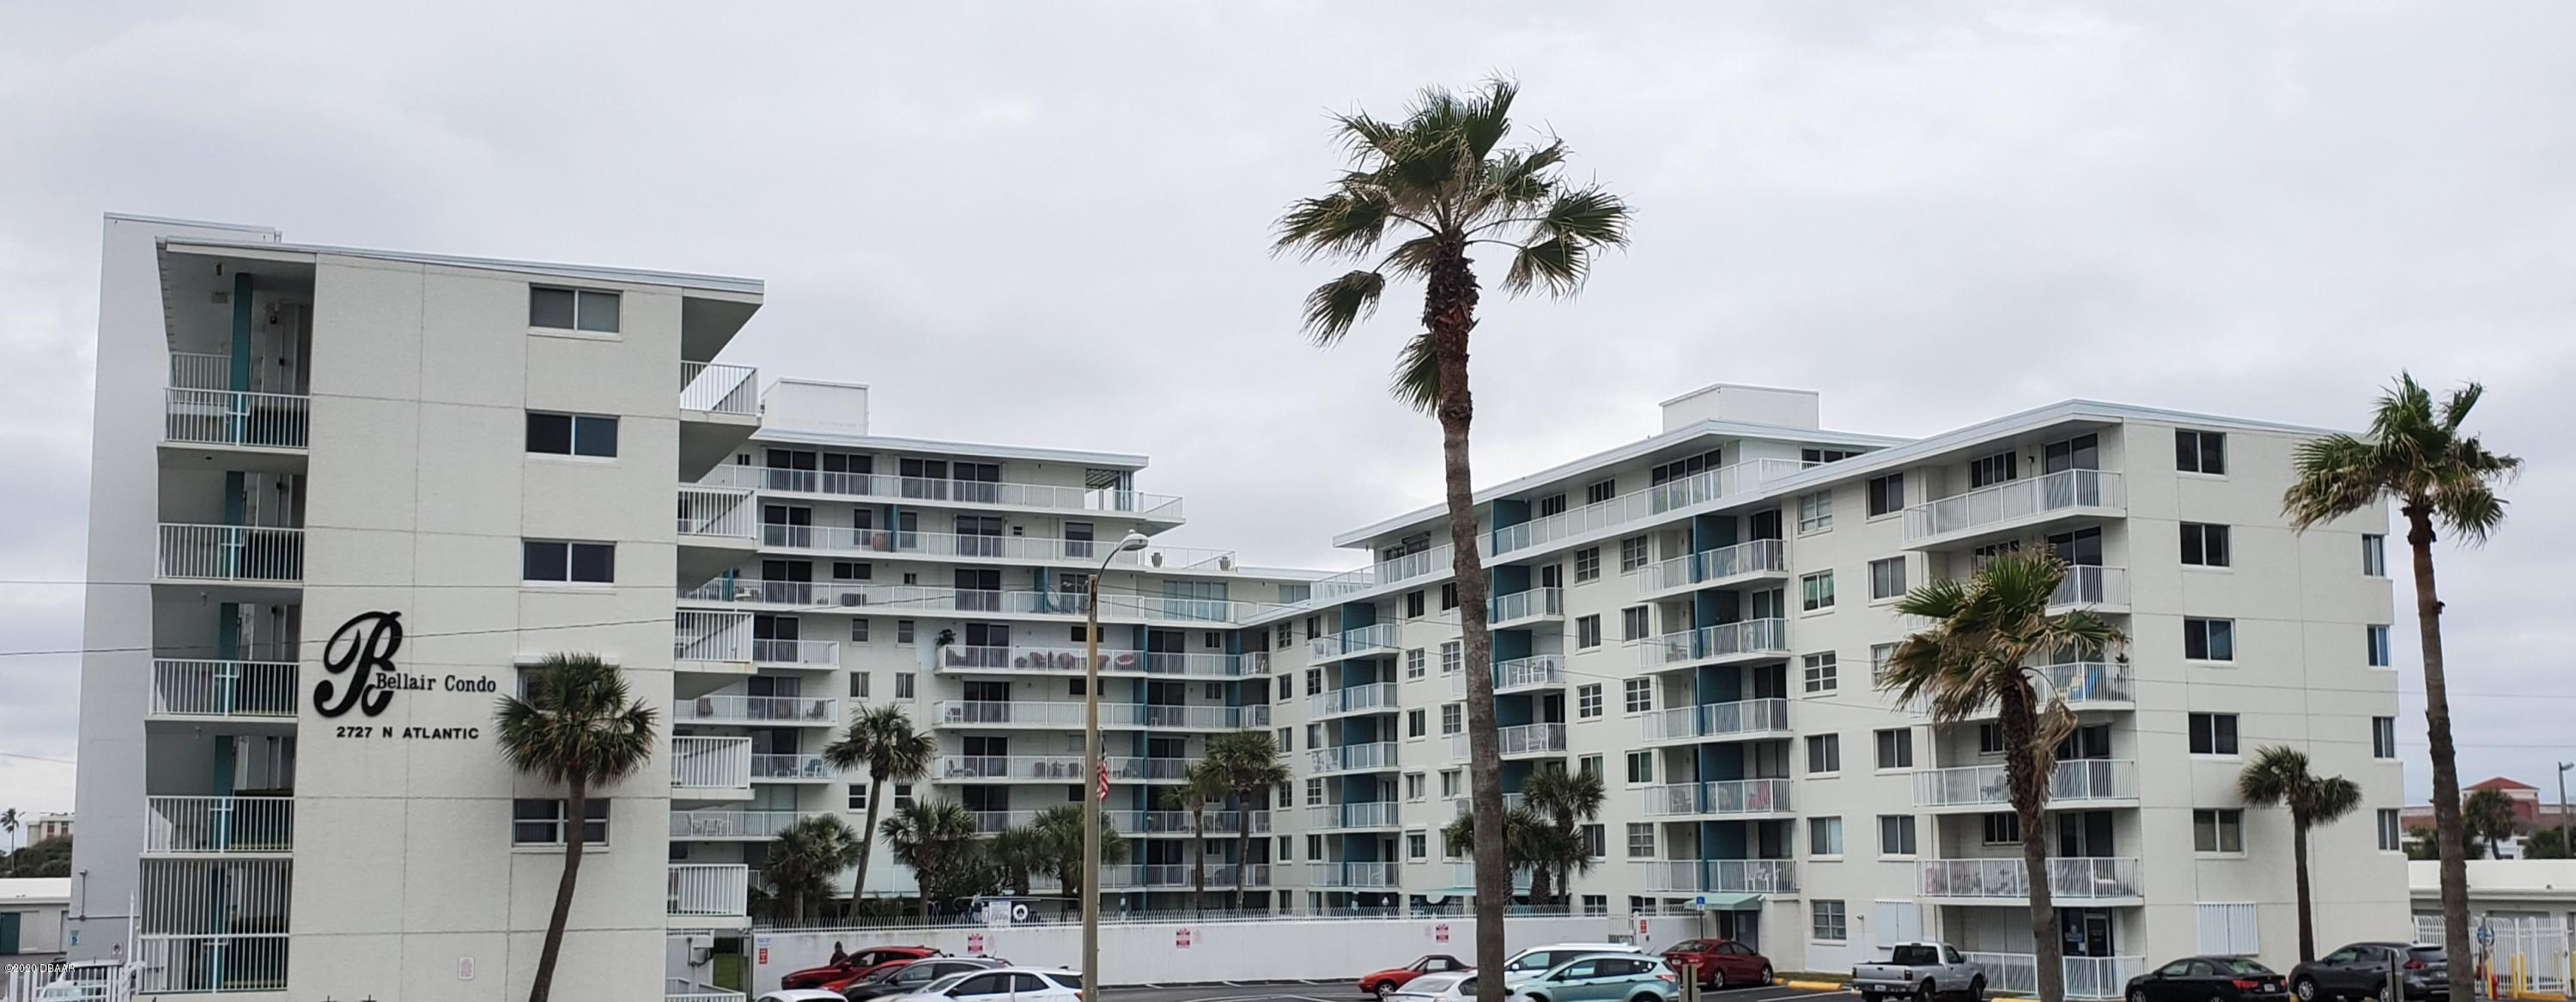 2727 Atlantic Daytona Beach - 1